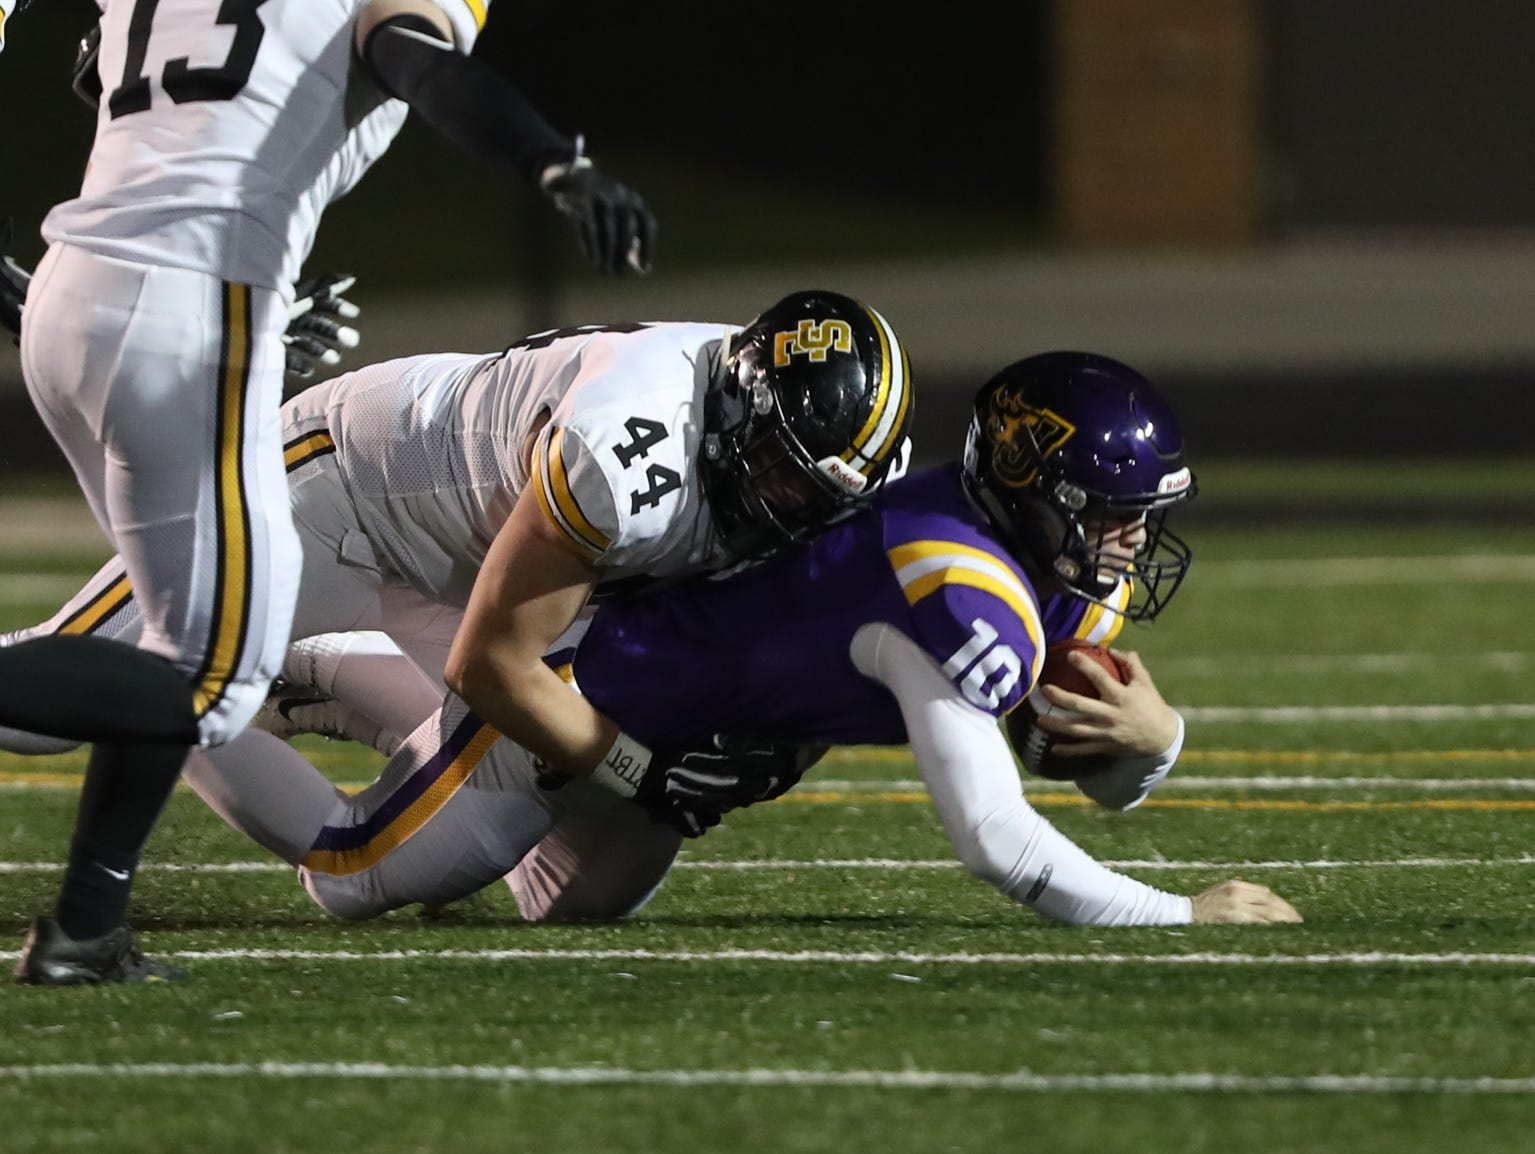 Nov 2, 2018; Johnston, IA, USA; Johnston Dragons Andrew Nord (10) is tackled by Southeast Polk Rams Tanner VanElsen (44) at Johnston Stadium. The Rams beat the Dragons 21-7.